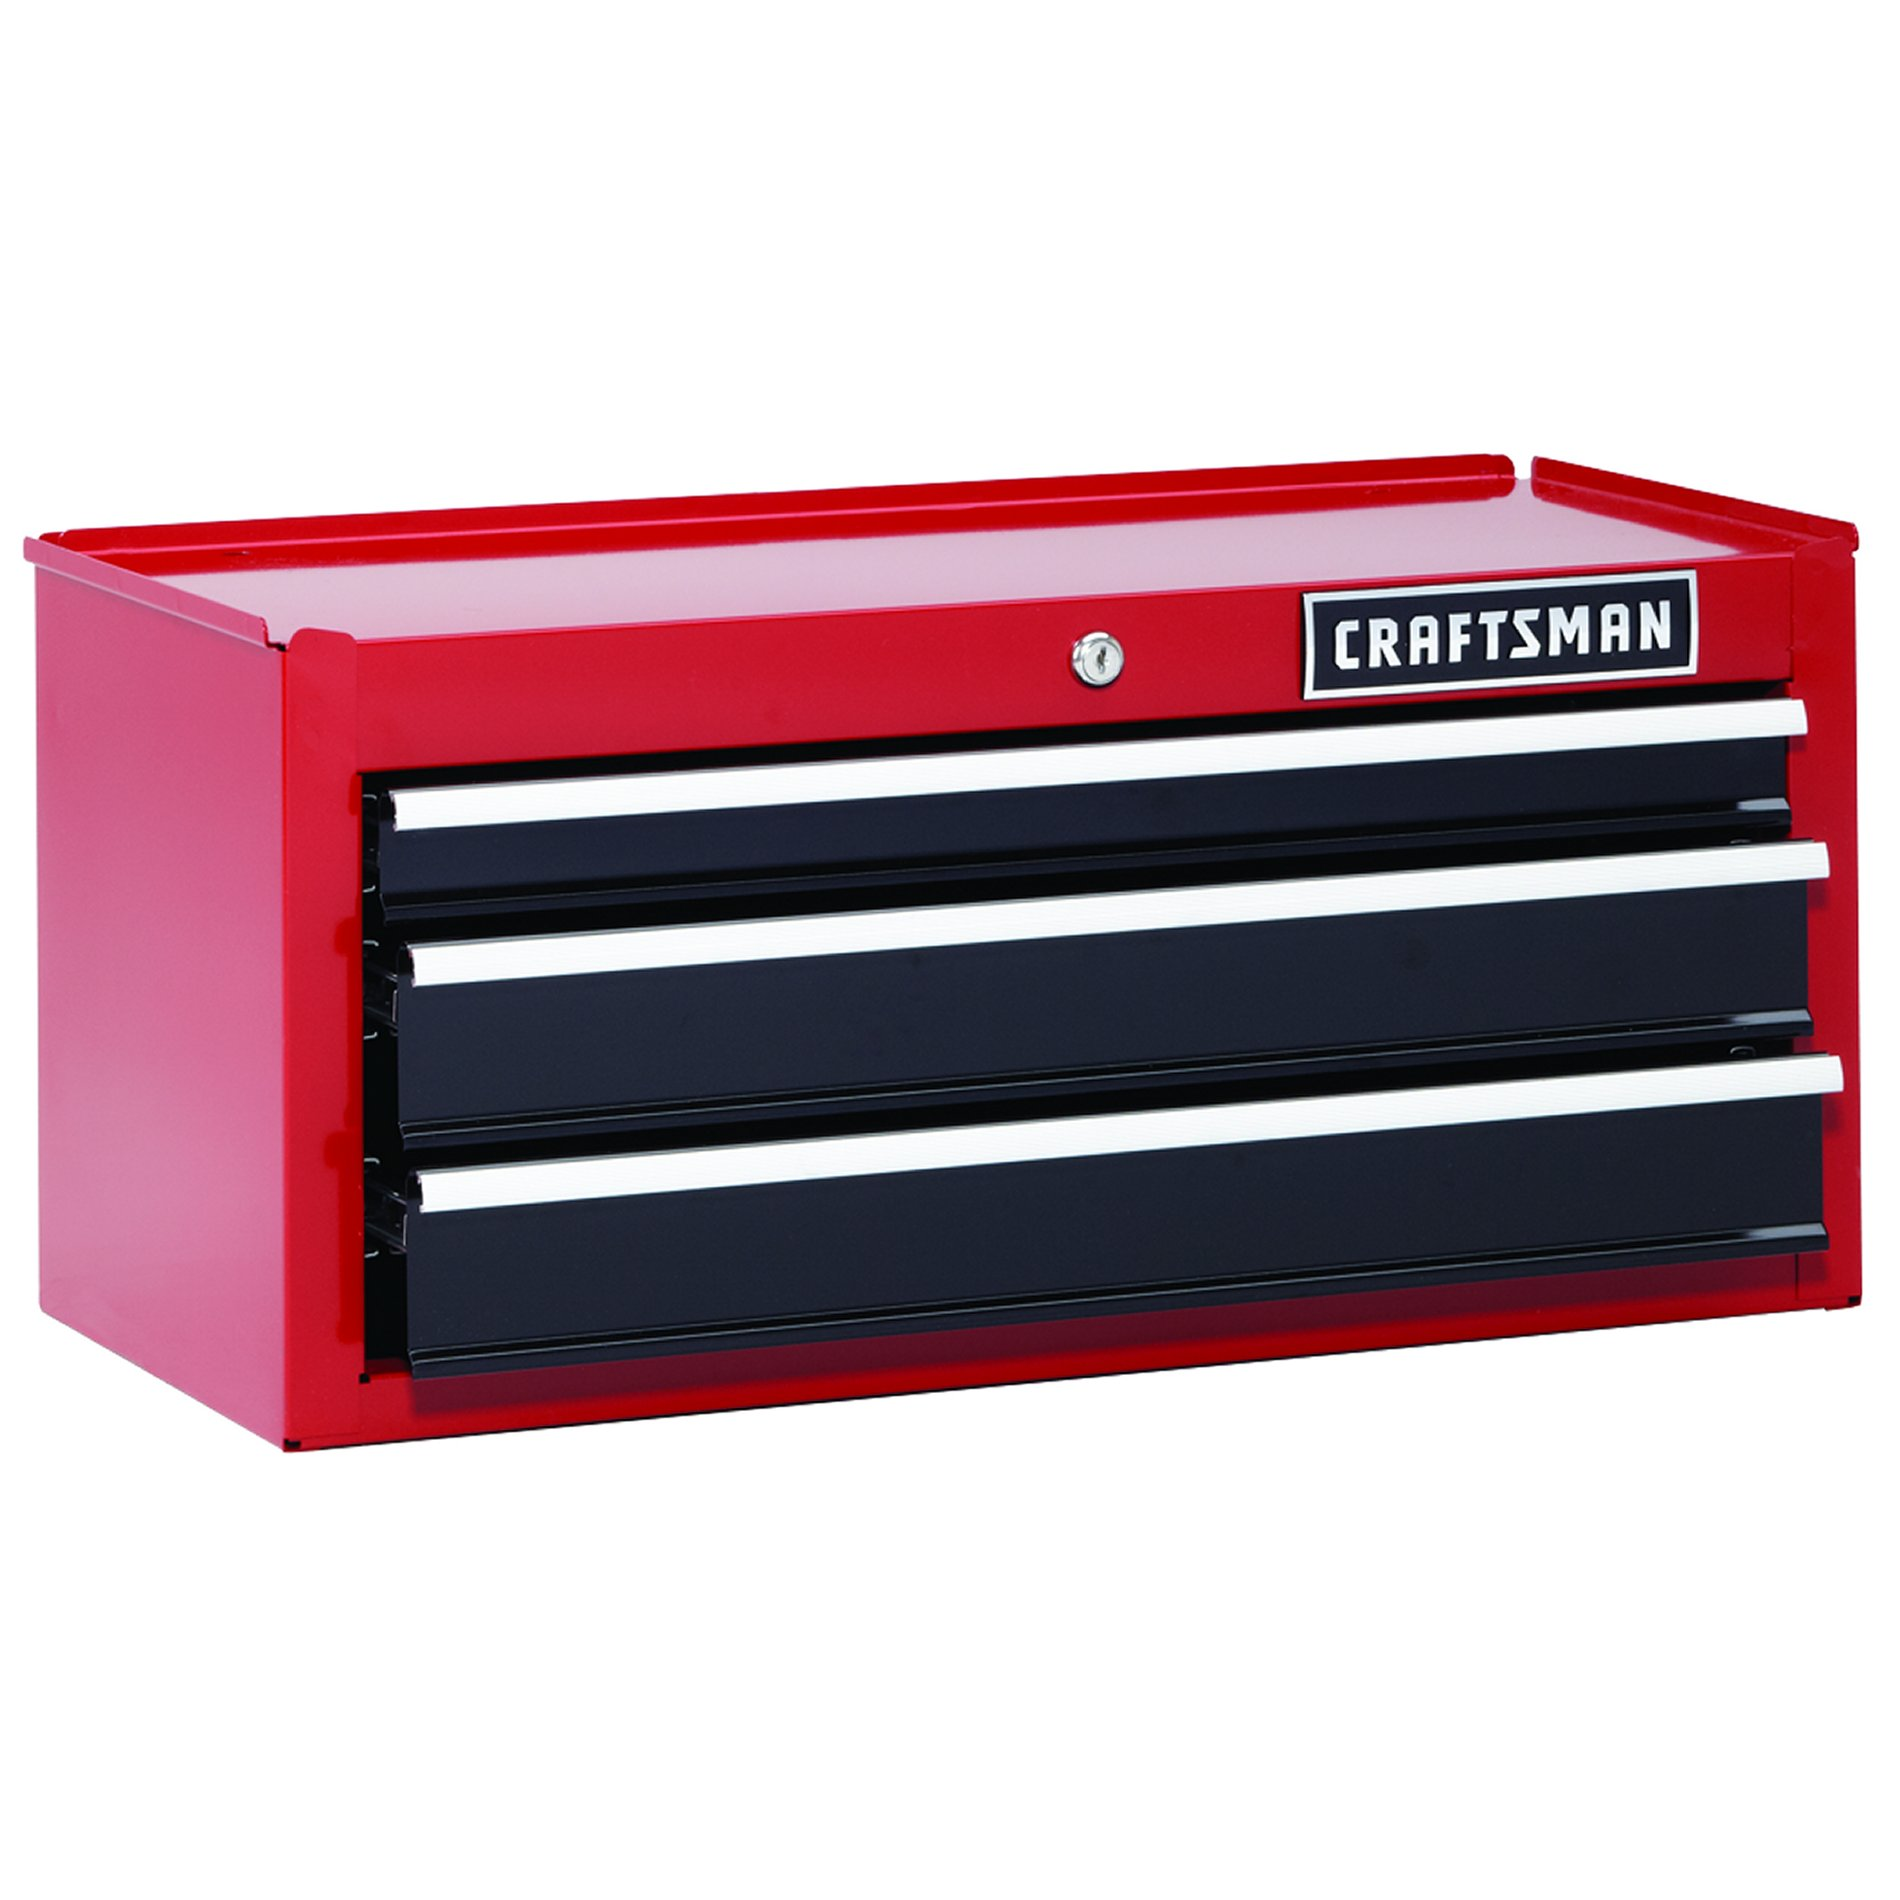 "Craftsman 26"""" 3-Drawer Heavy-Duty Middle Chest - Red/Black"